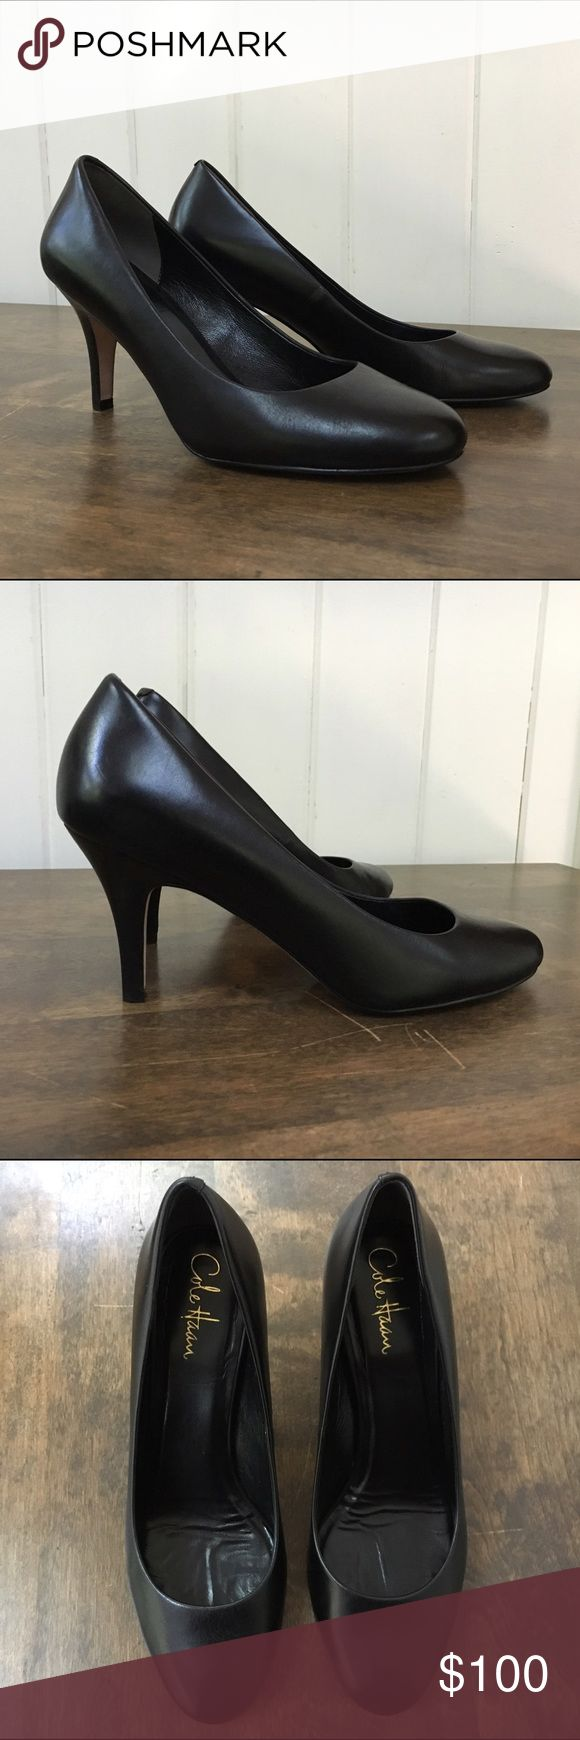 """Cole Haan Air Lainey Pump Cole Haan Air Lainey Pump with Nike Air technology. 0.75cm / ~3"""" heel.  Size 10 (regular width).  Black leather.  Great condition; only worn a few times.  Heels come with original box and dust bag. Cole Haan Shoes Heels"""